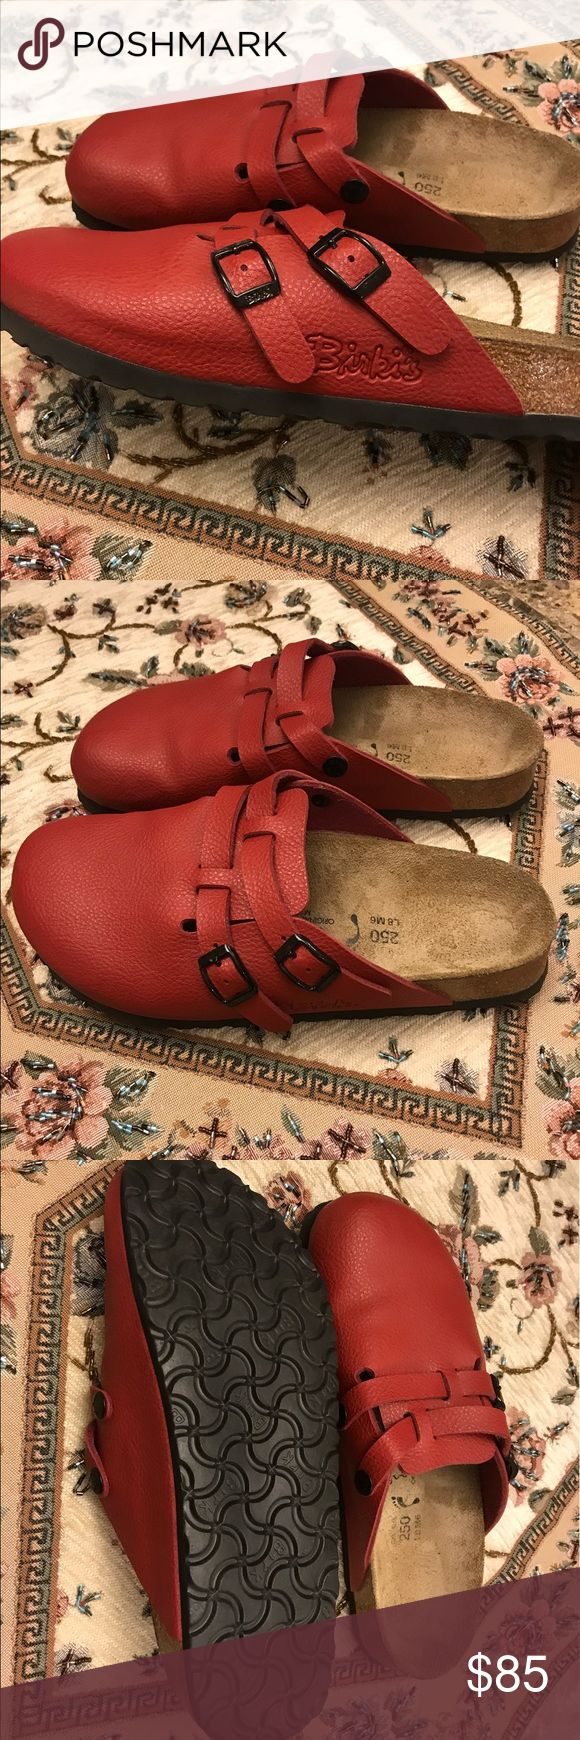 Birkenstock Camden Twin Strap Closed Toe Sandals Such a pretty color, only been worn twice. Very good condition. Lots of life left. Limited edition color. Ladies 8 Men's 6 Birkenstock Shoes Sandals